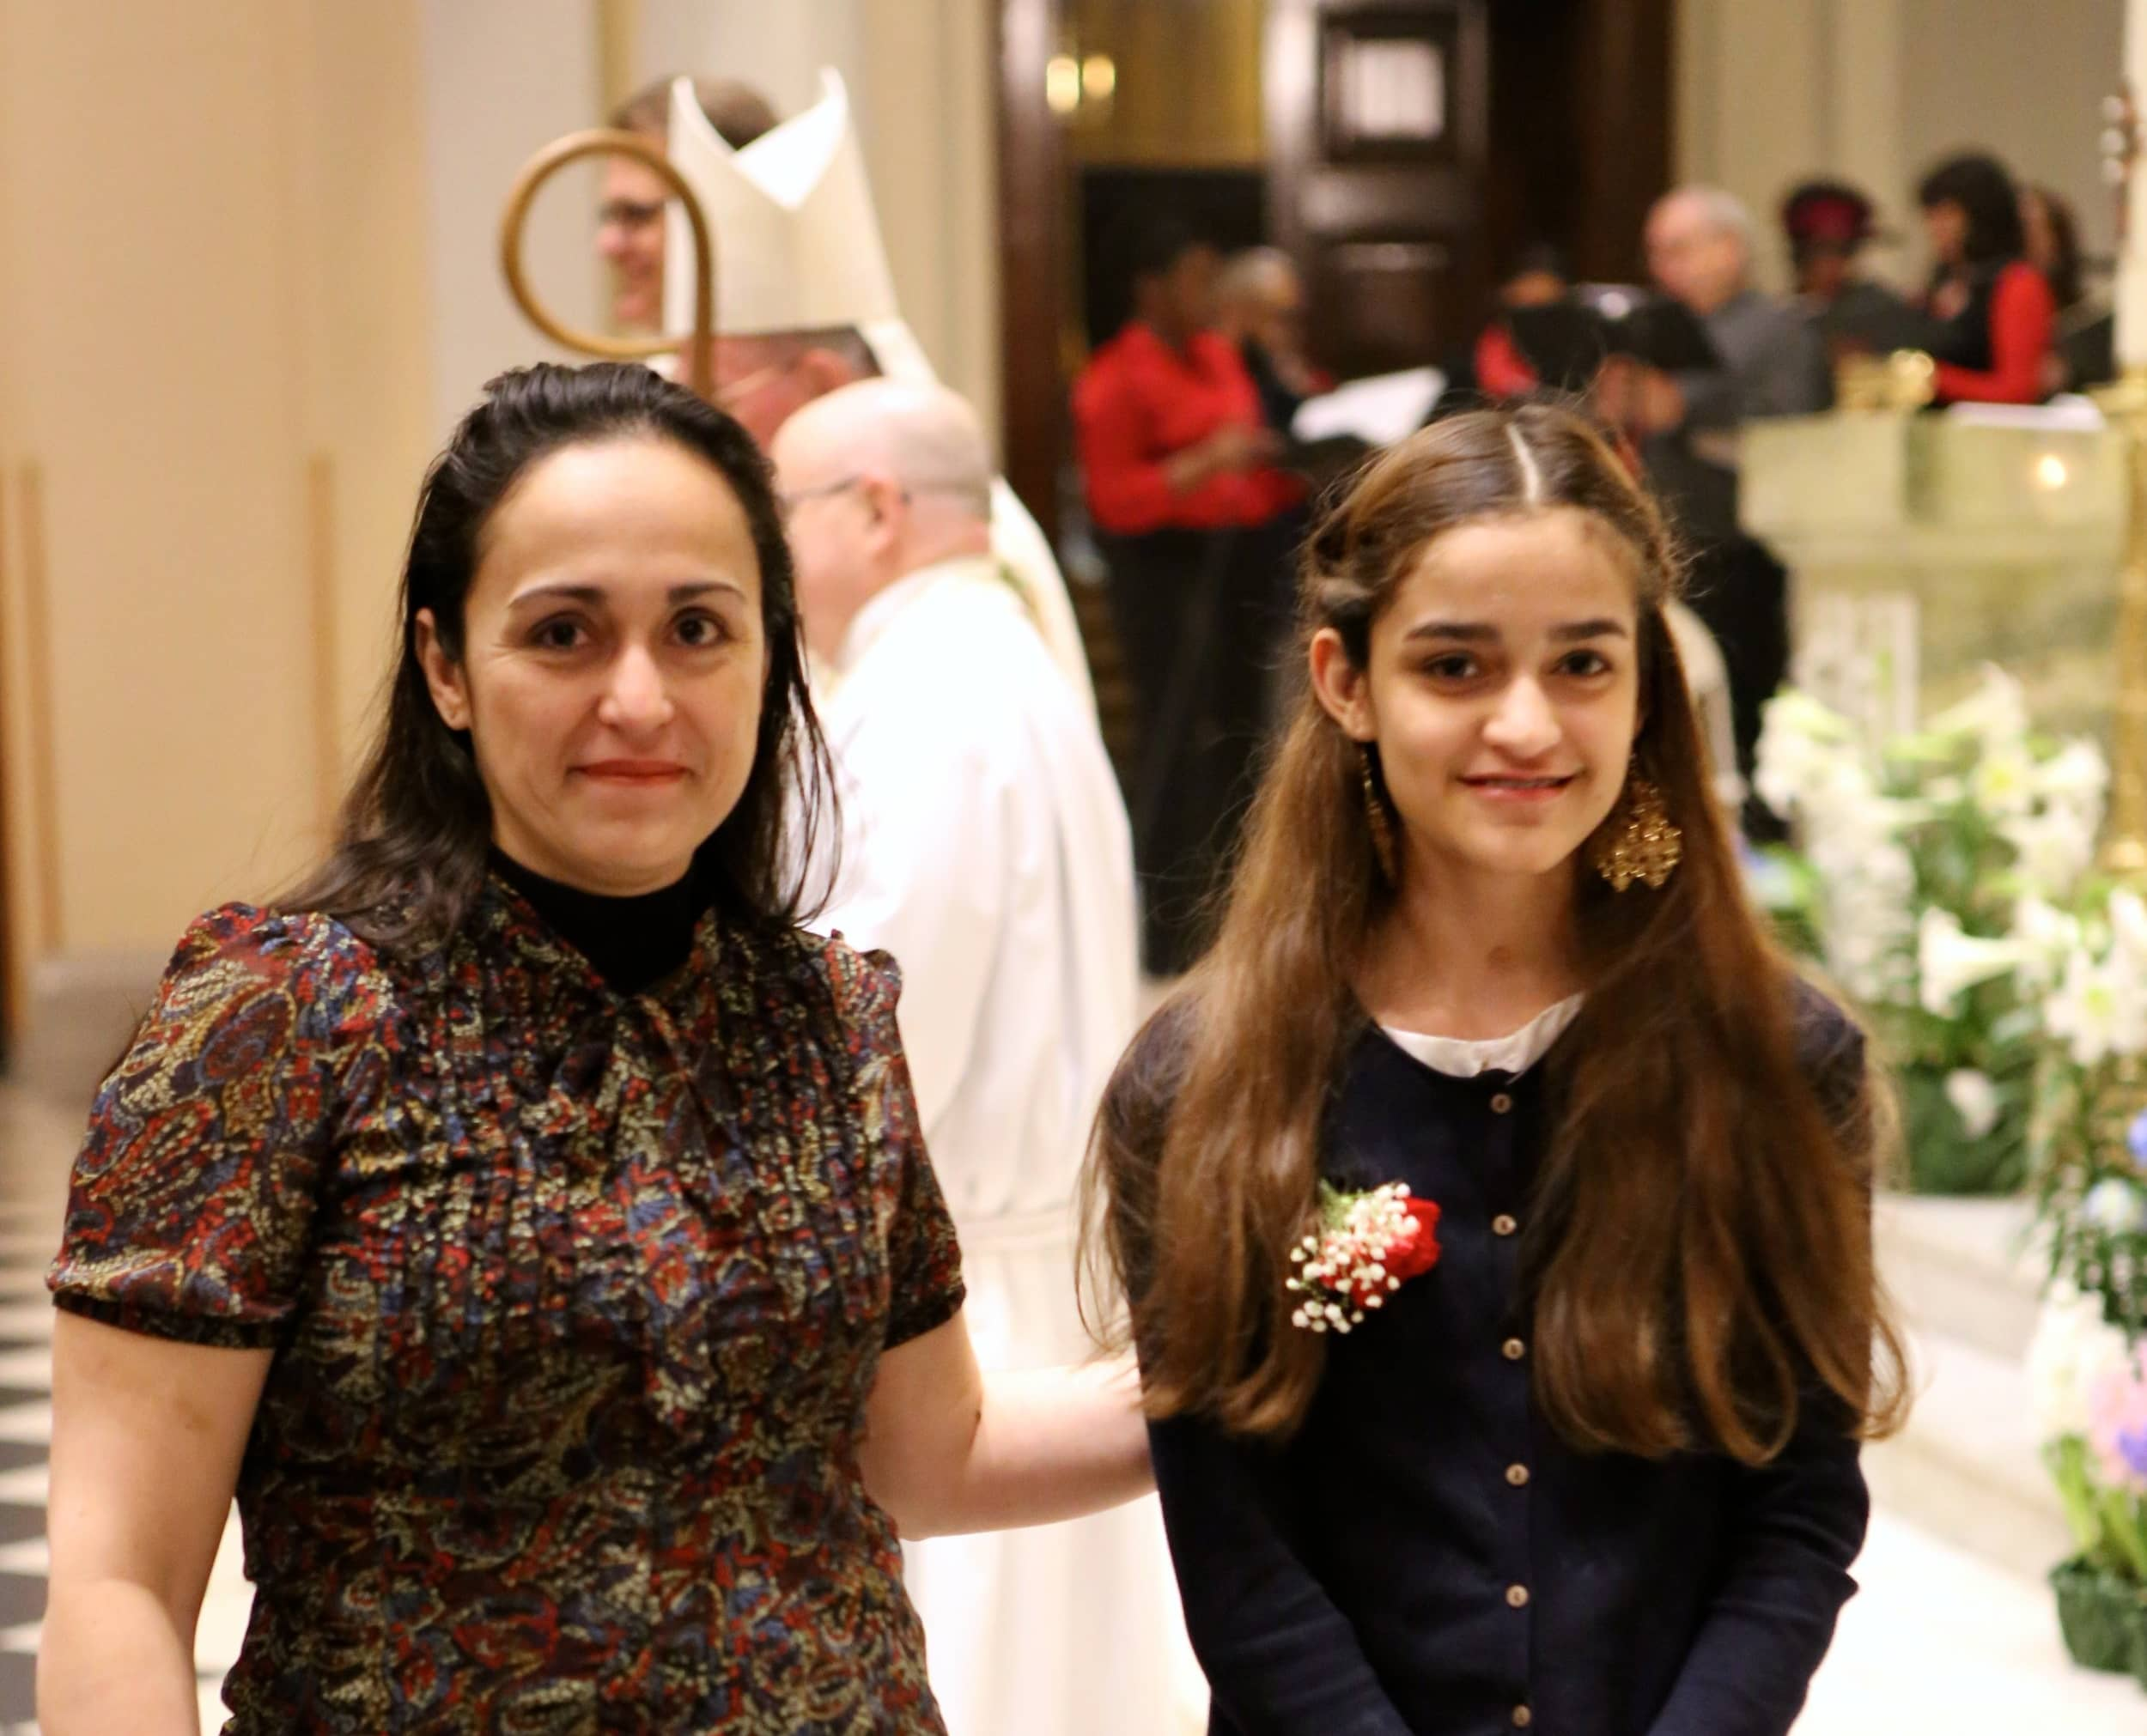 mom-daughter-first-communion-st-francis-de-sales-church-new-york-city.jpg